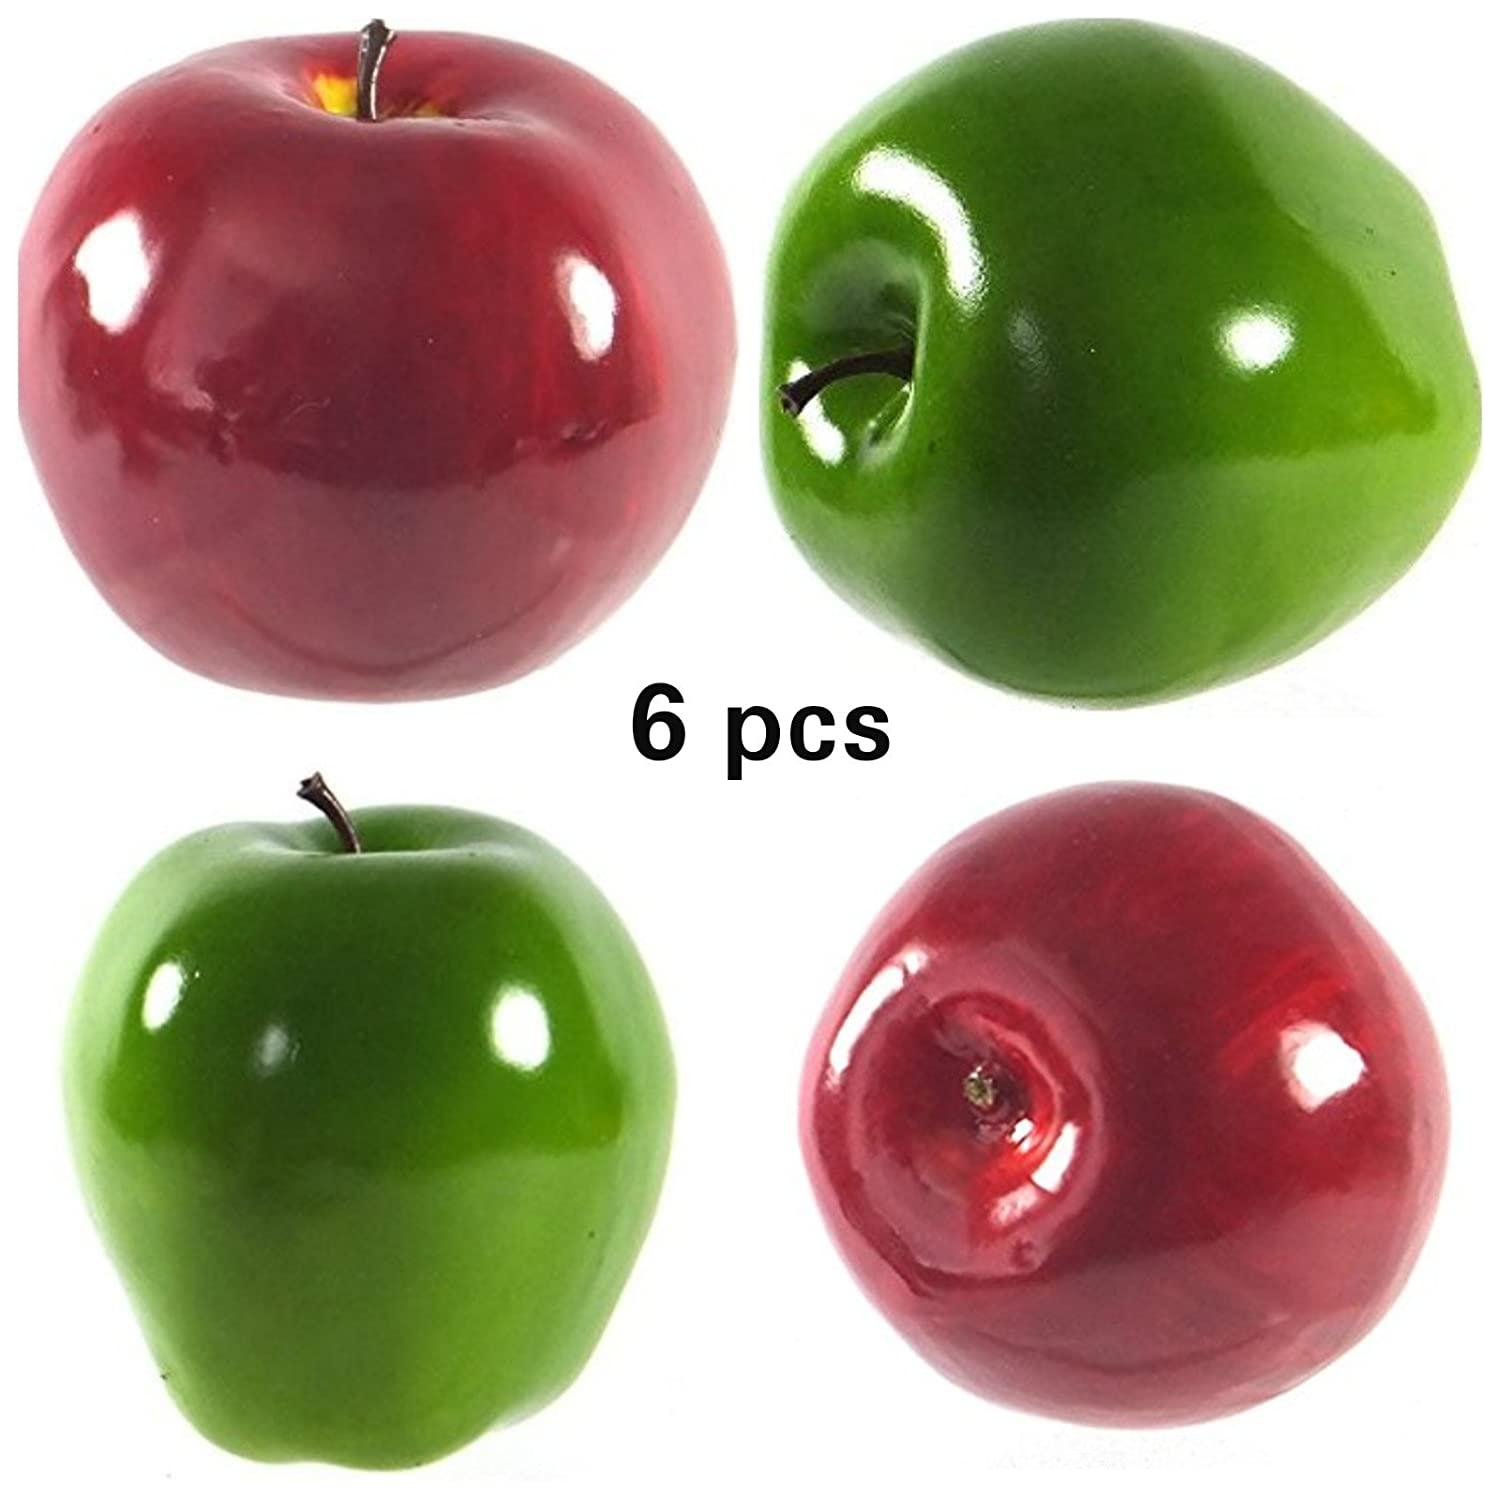 Mezly 6pcs Decorative Apple Large Artificial Washington Apple Red, Green, and Mix Apple Plastic Fruits Home Party Decor (GREEN)